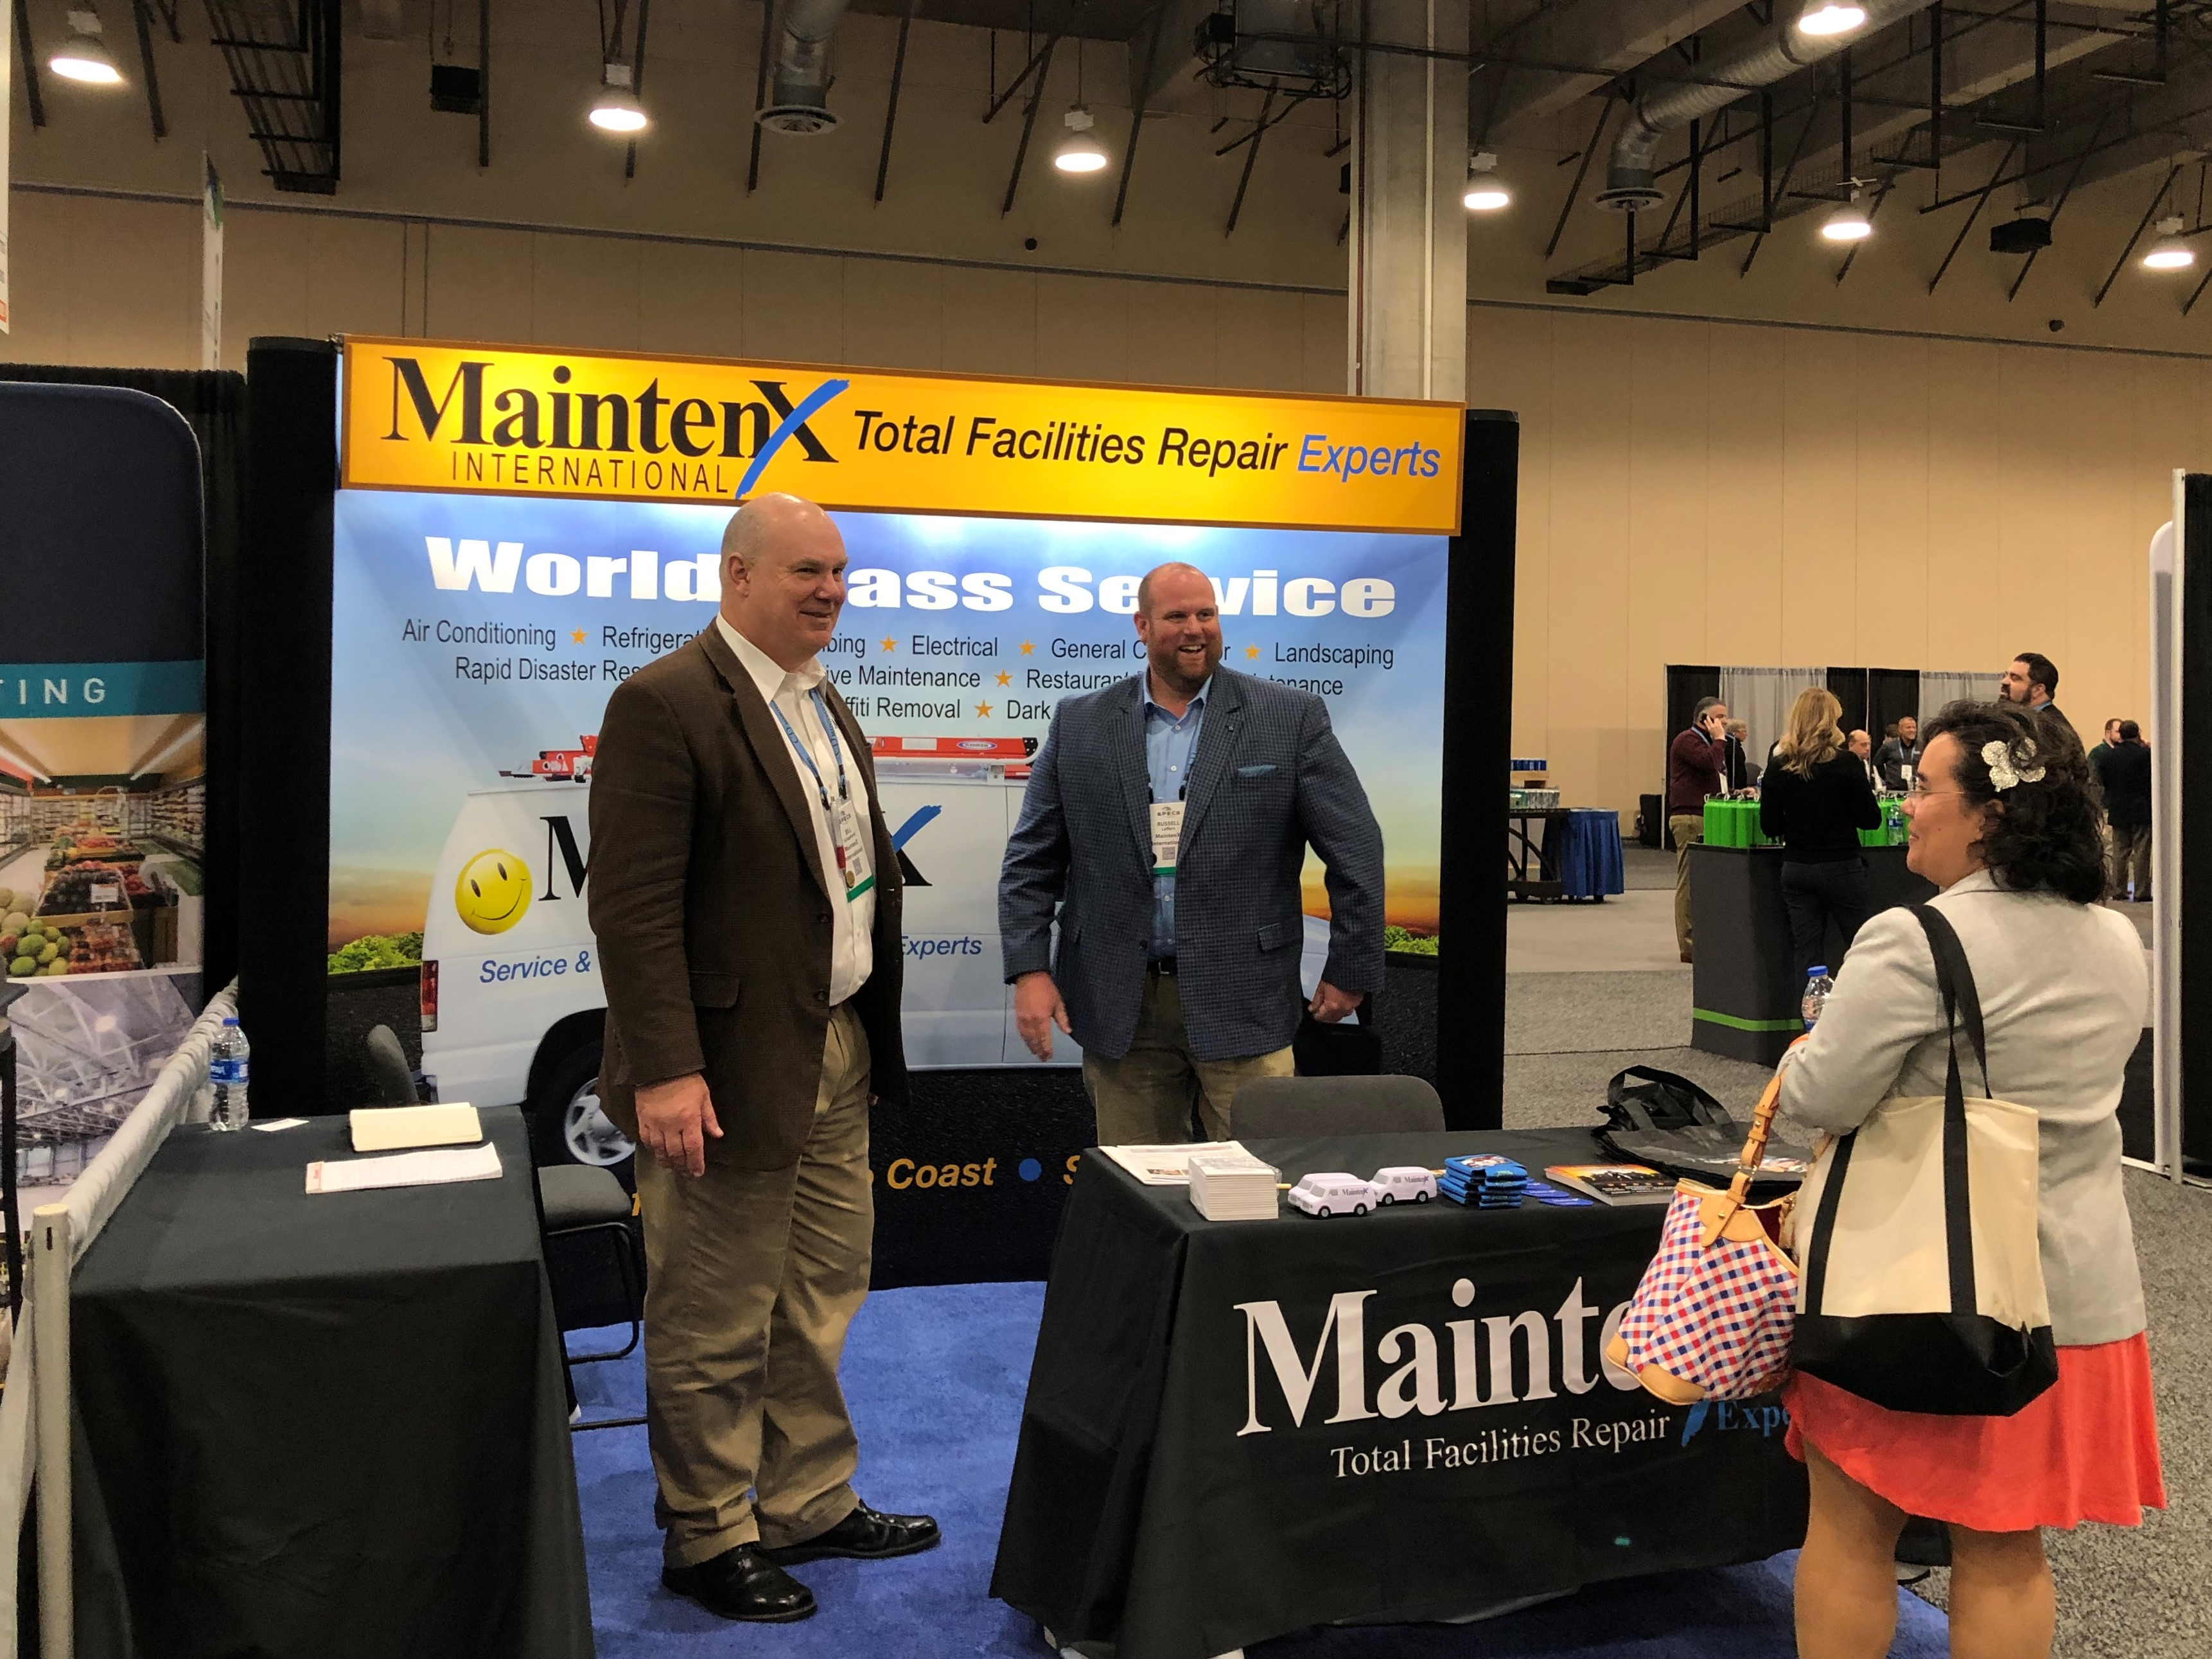 Brick-and-Mortar Stores Learn Benefits of MaintenX at SPECS